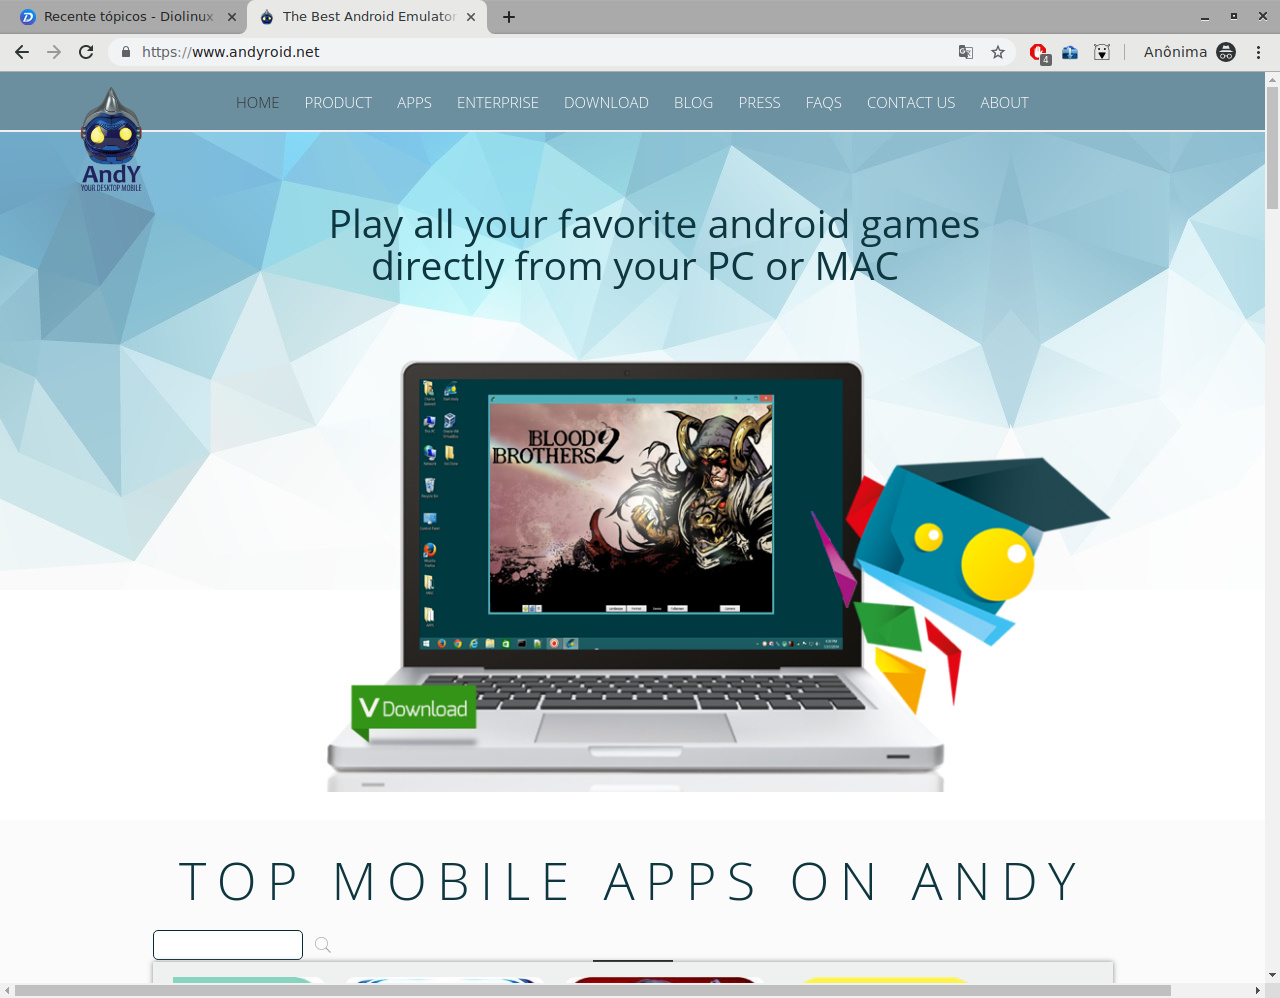 Andy Android Emulator Alpha - Linux - Diolinux Plus